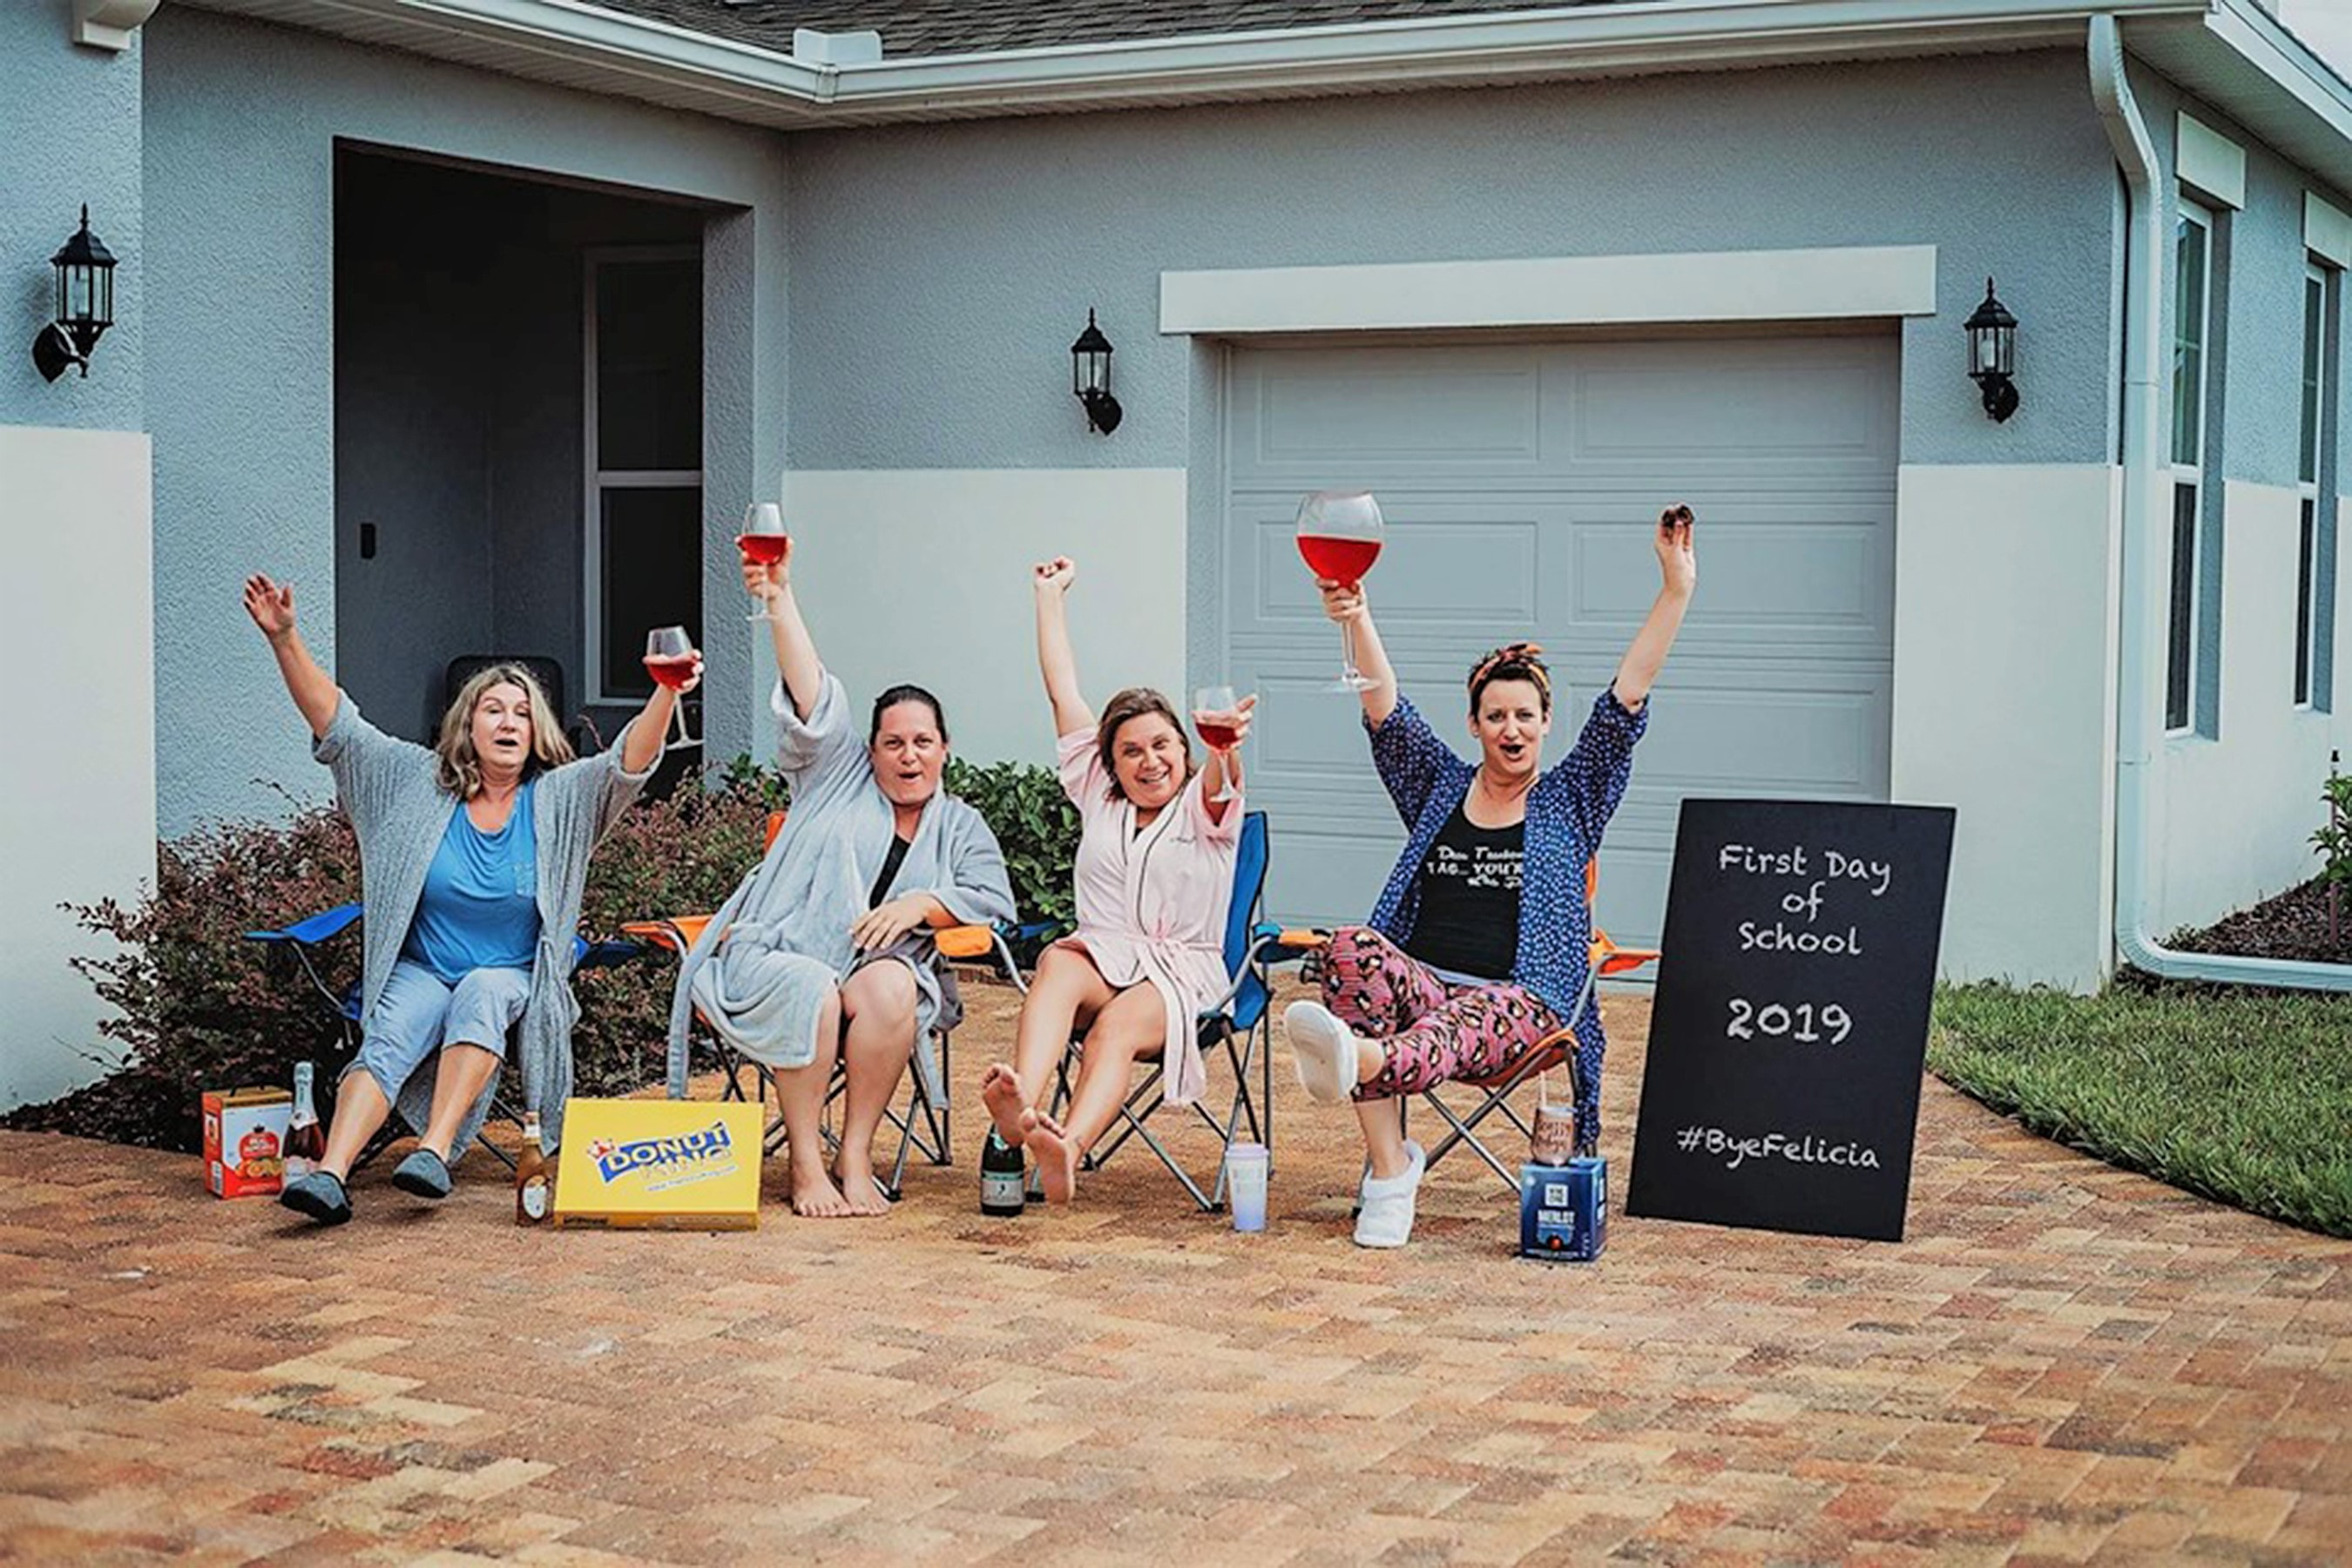 Moms Celebrate First Day of School with Hilarious 'Bye Felicia' Photo Shoot: 'Me and My Girls!'